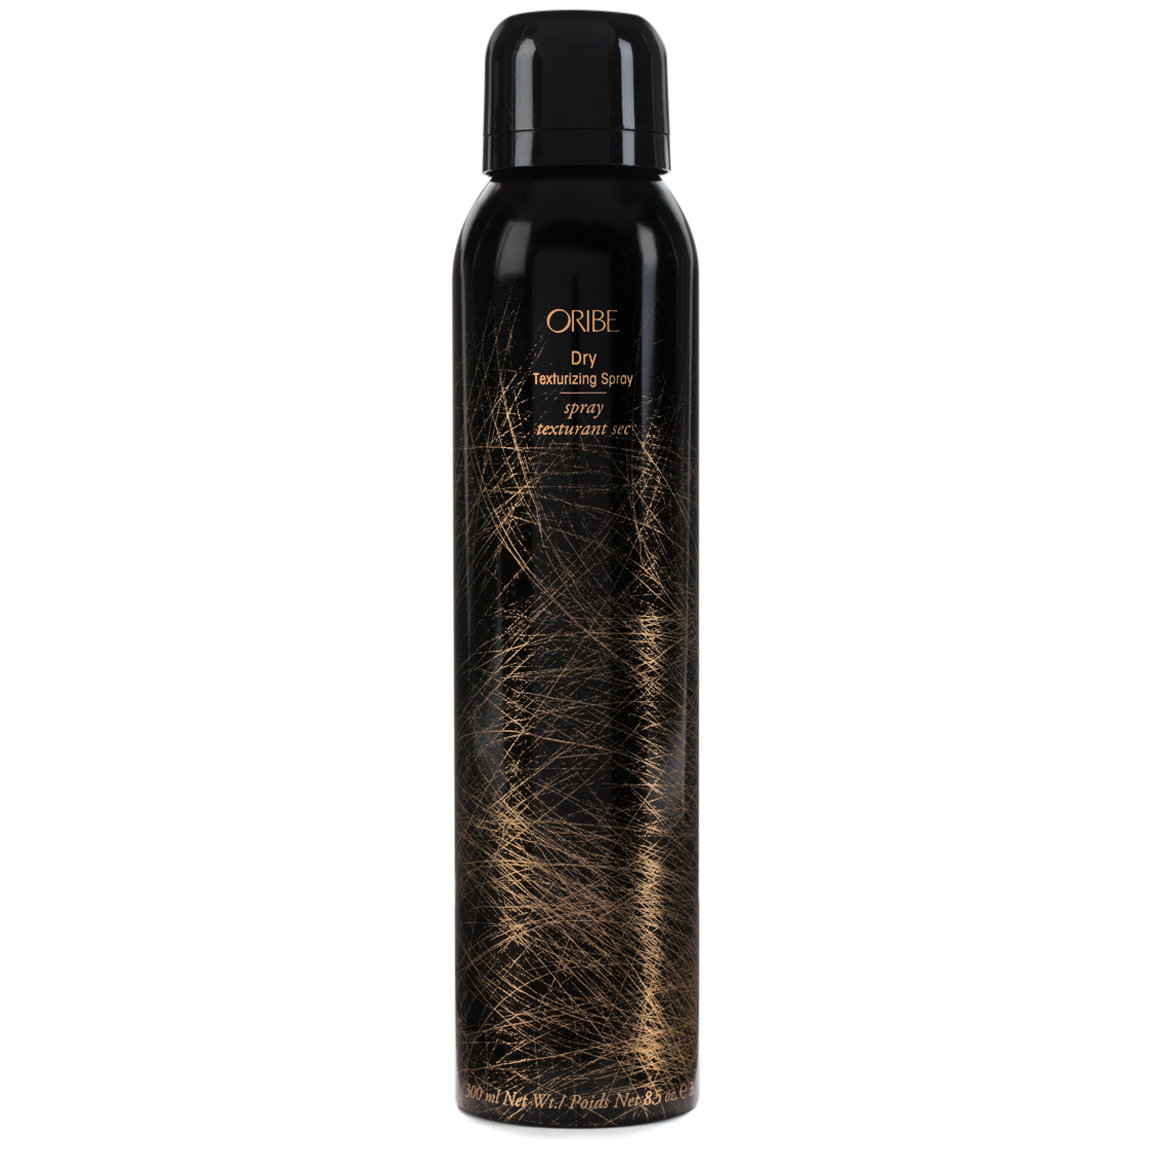 Oribe Dry Texturizing Spray 8.5 fl oz product smear.